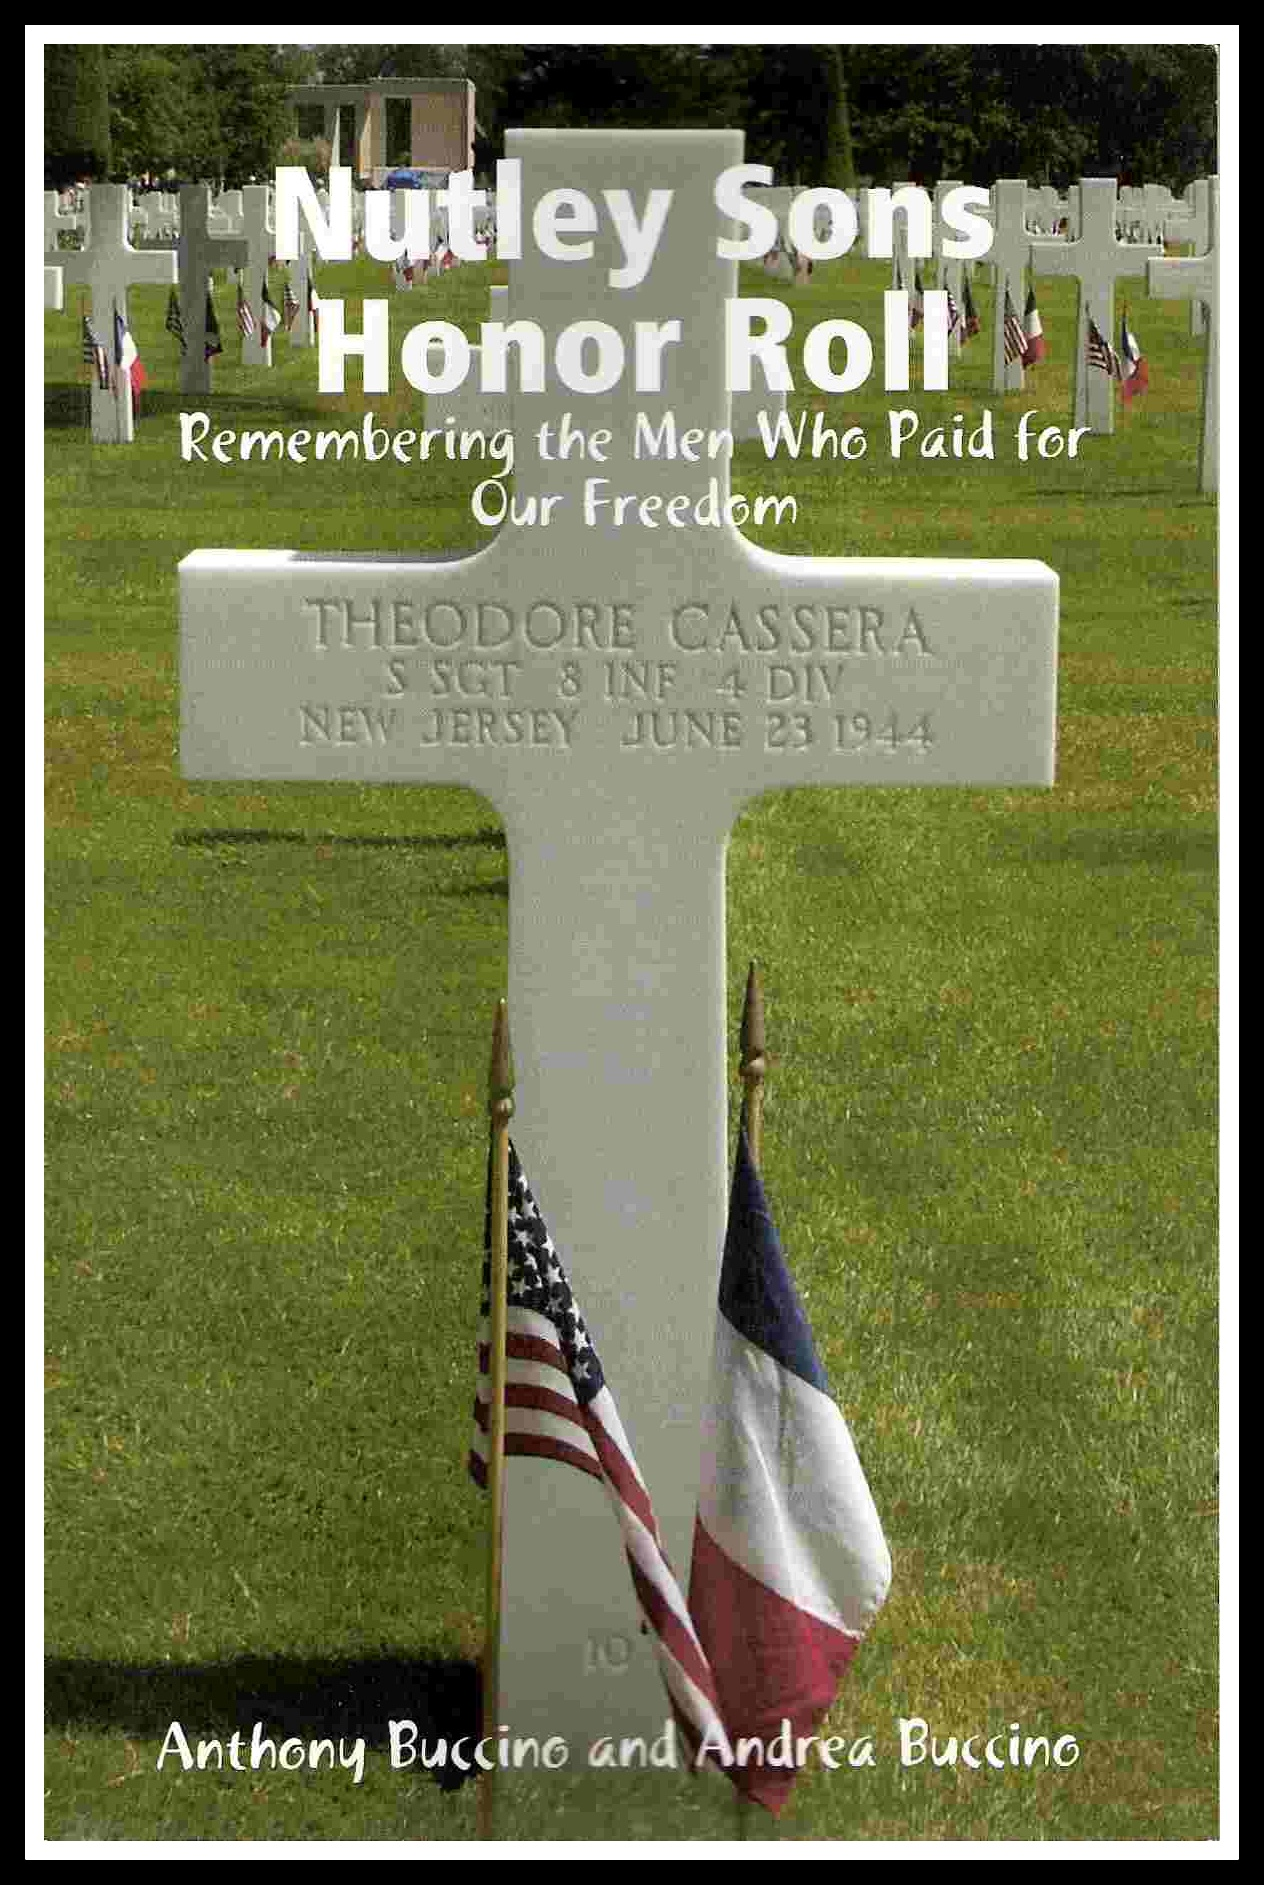 Nutley Sons Honor Roll- remembering the men who paid for our freedom